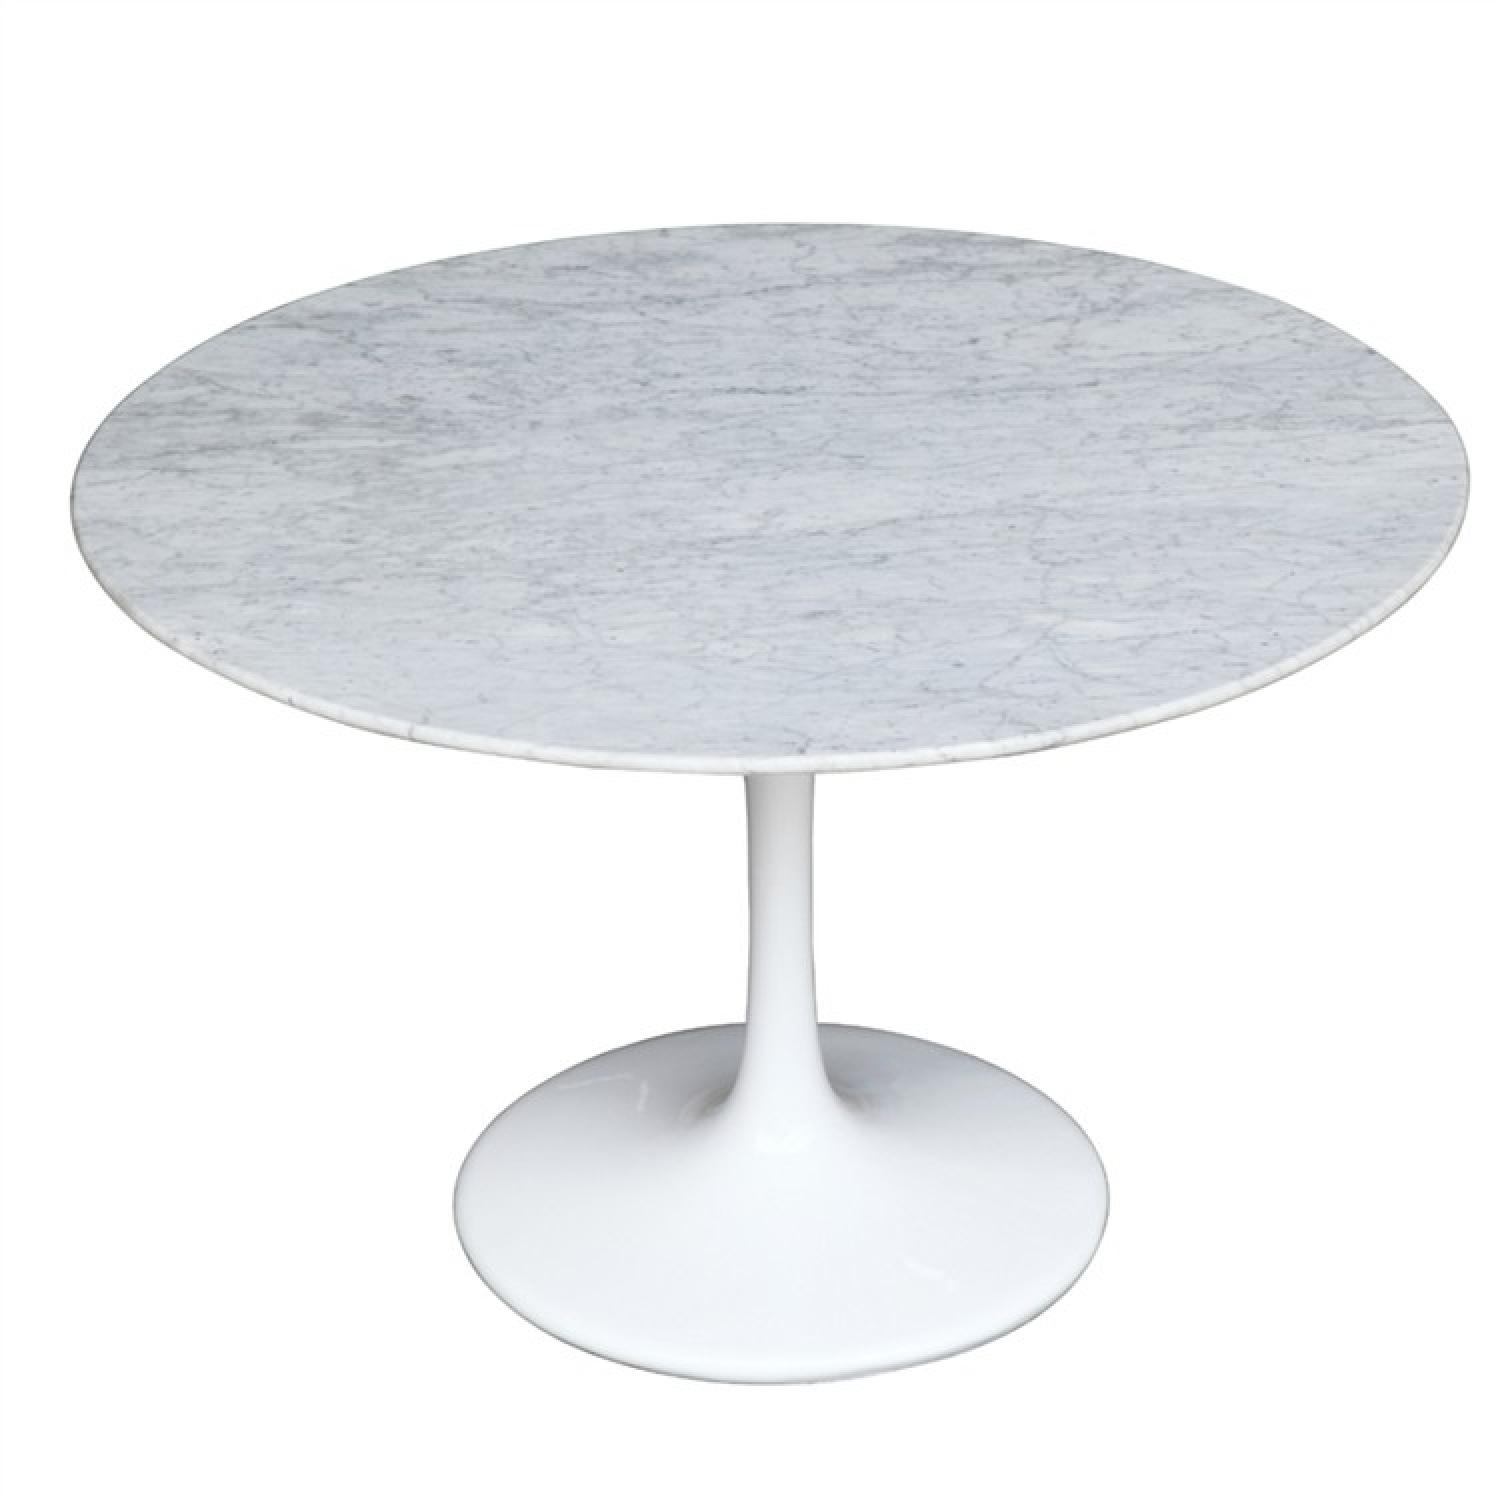 White Tulip Style Round Dining Table w/ Marble Top & Fibergl